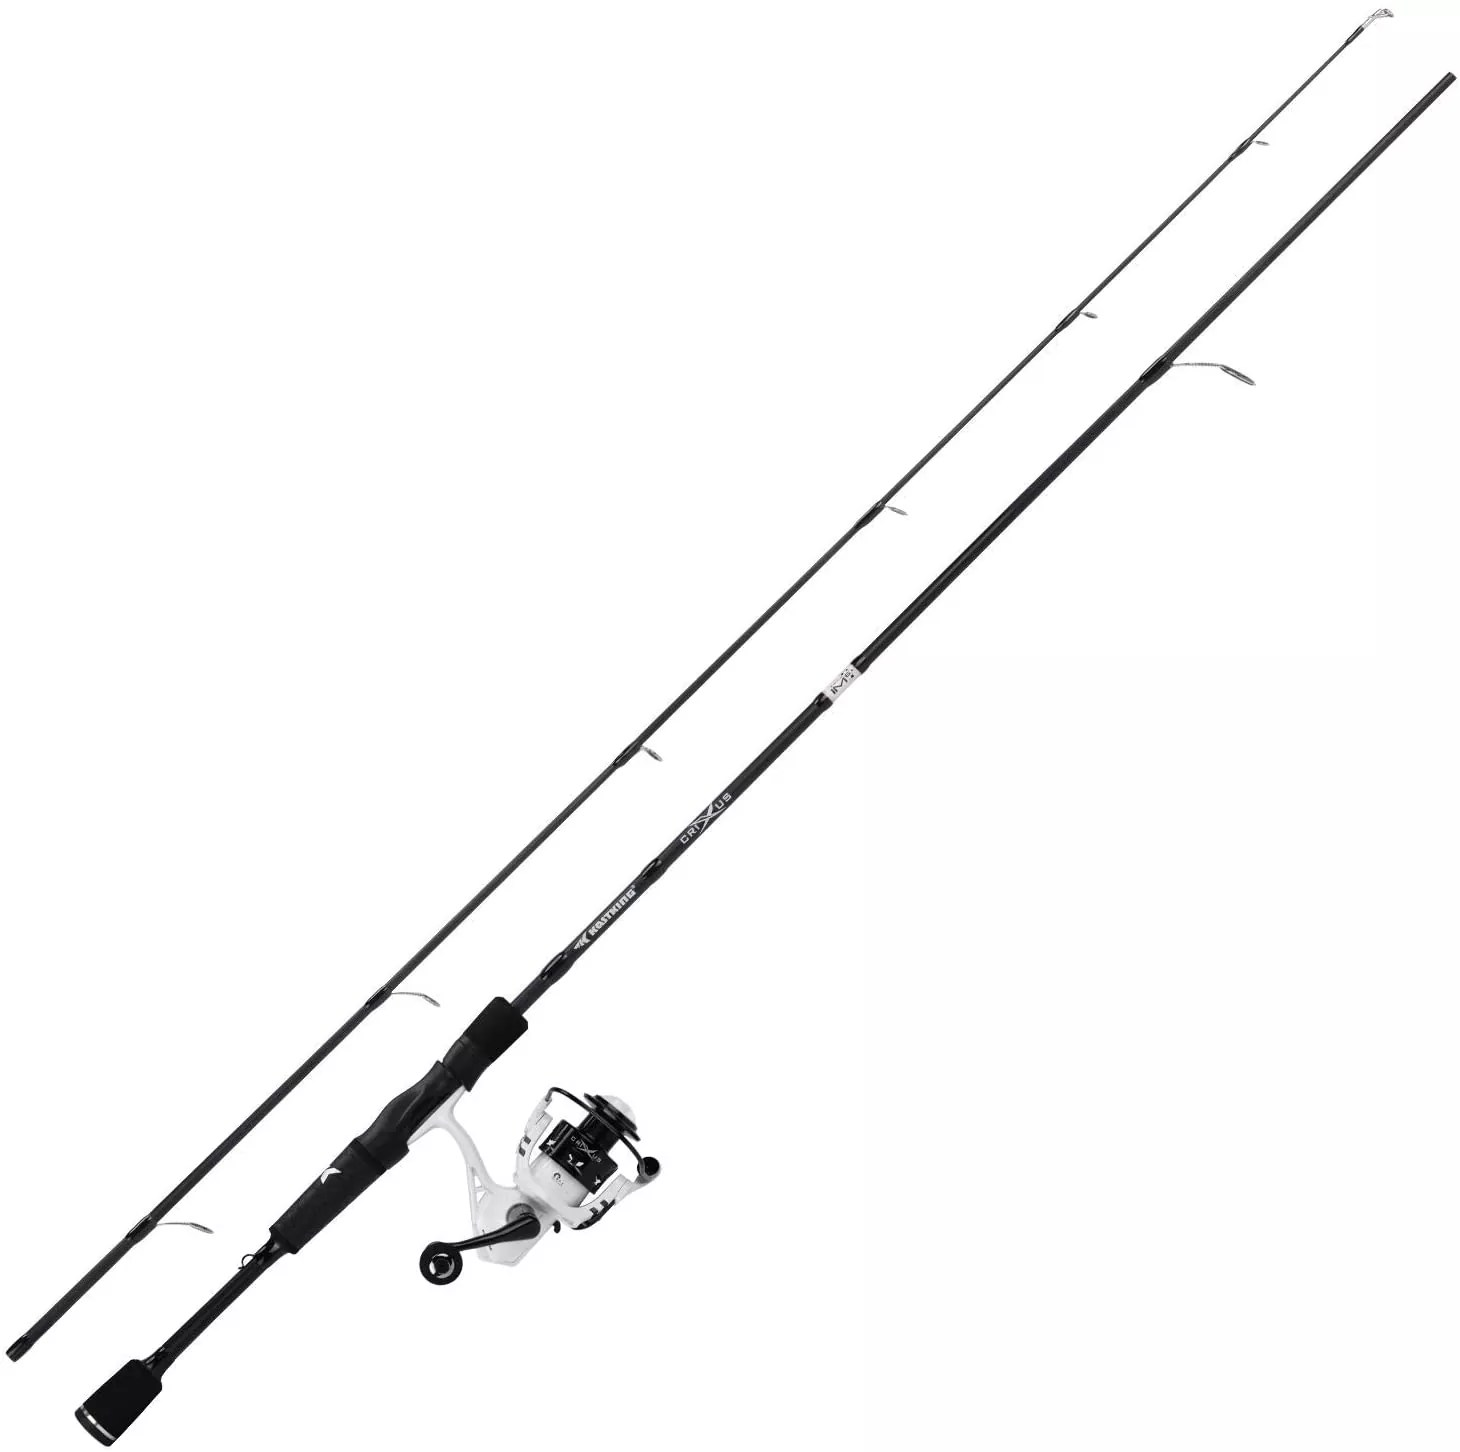 KastKing Crixus Fishing Rod and Reel Combo, Baitcasting Combo